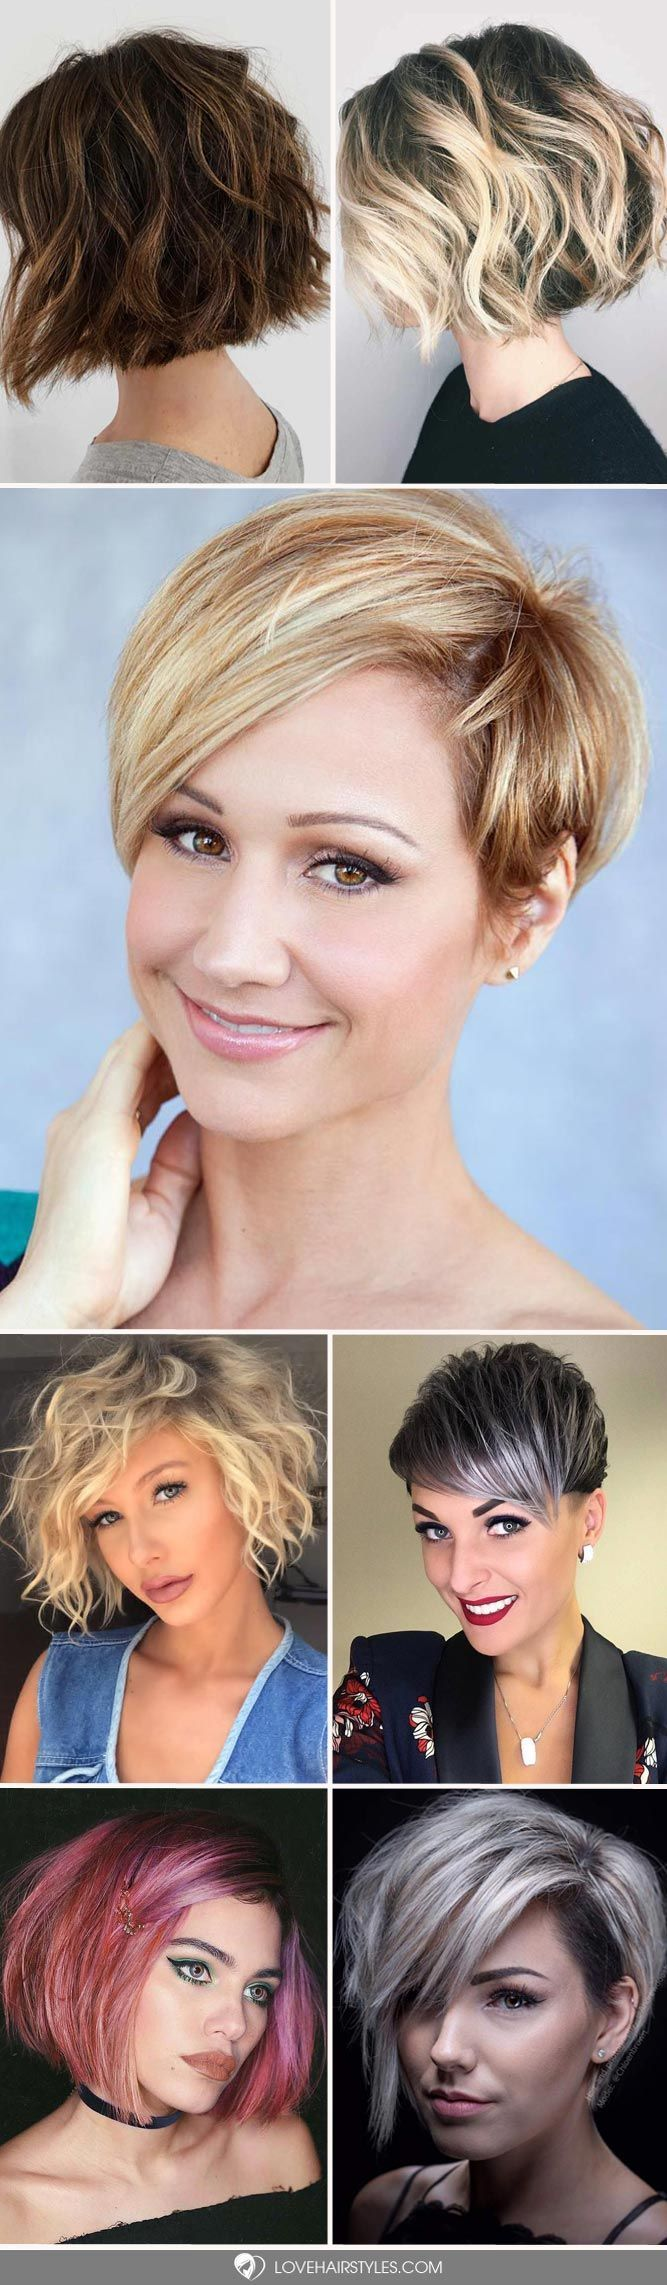 Quick Hairstyles For Short Hair Mesmerizing 21 Super Quick Hairstyles For Short Hair  Short Hair Shorts And